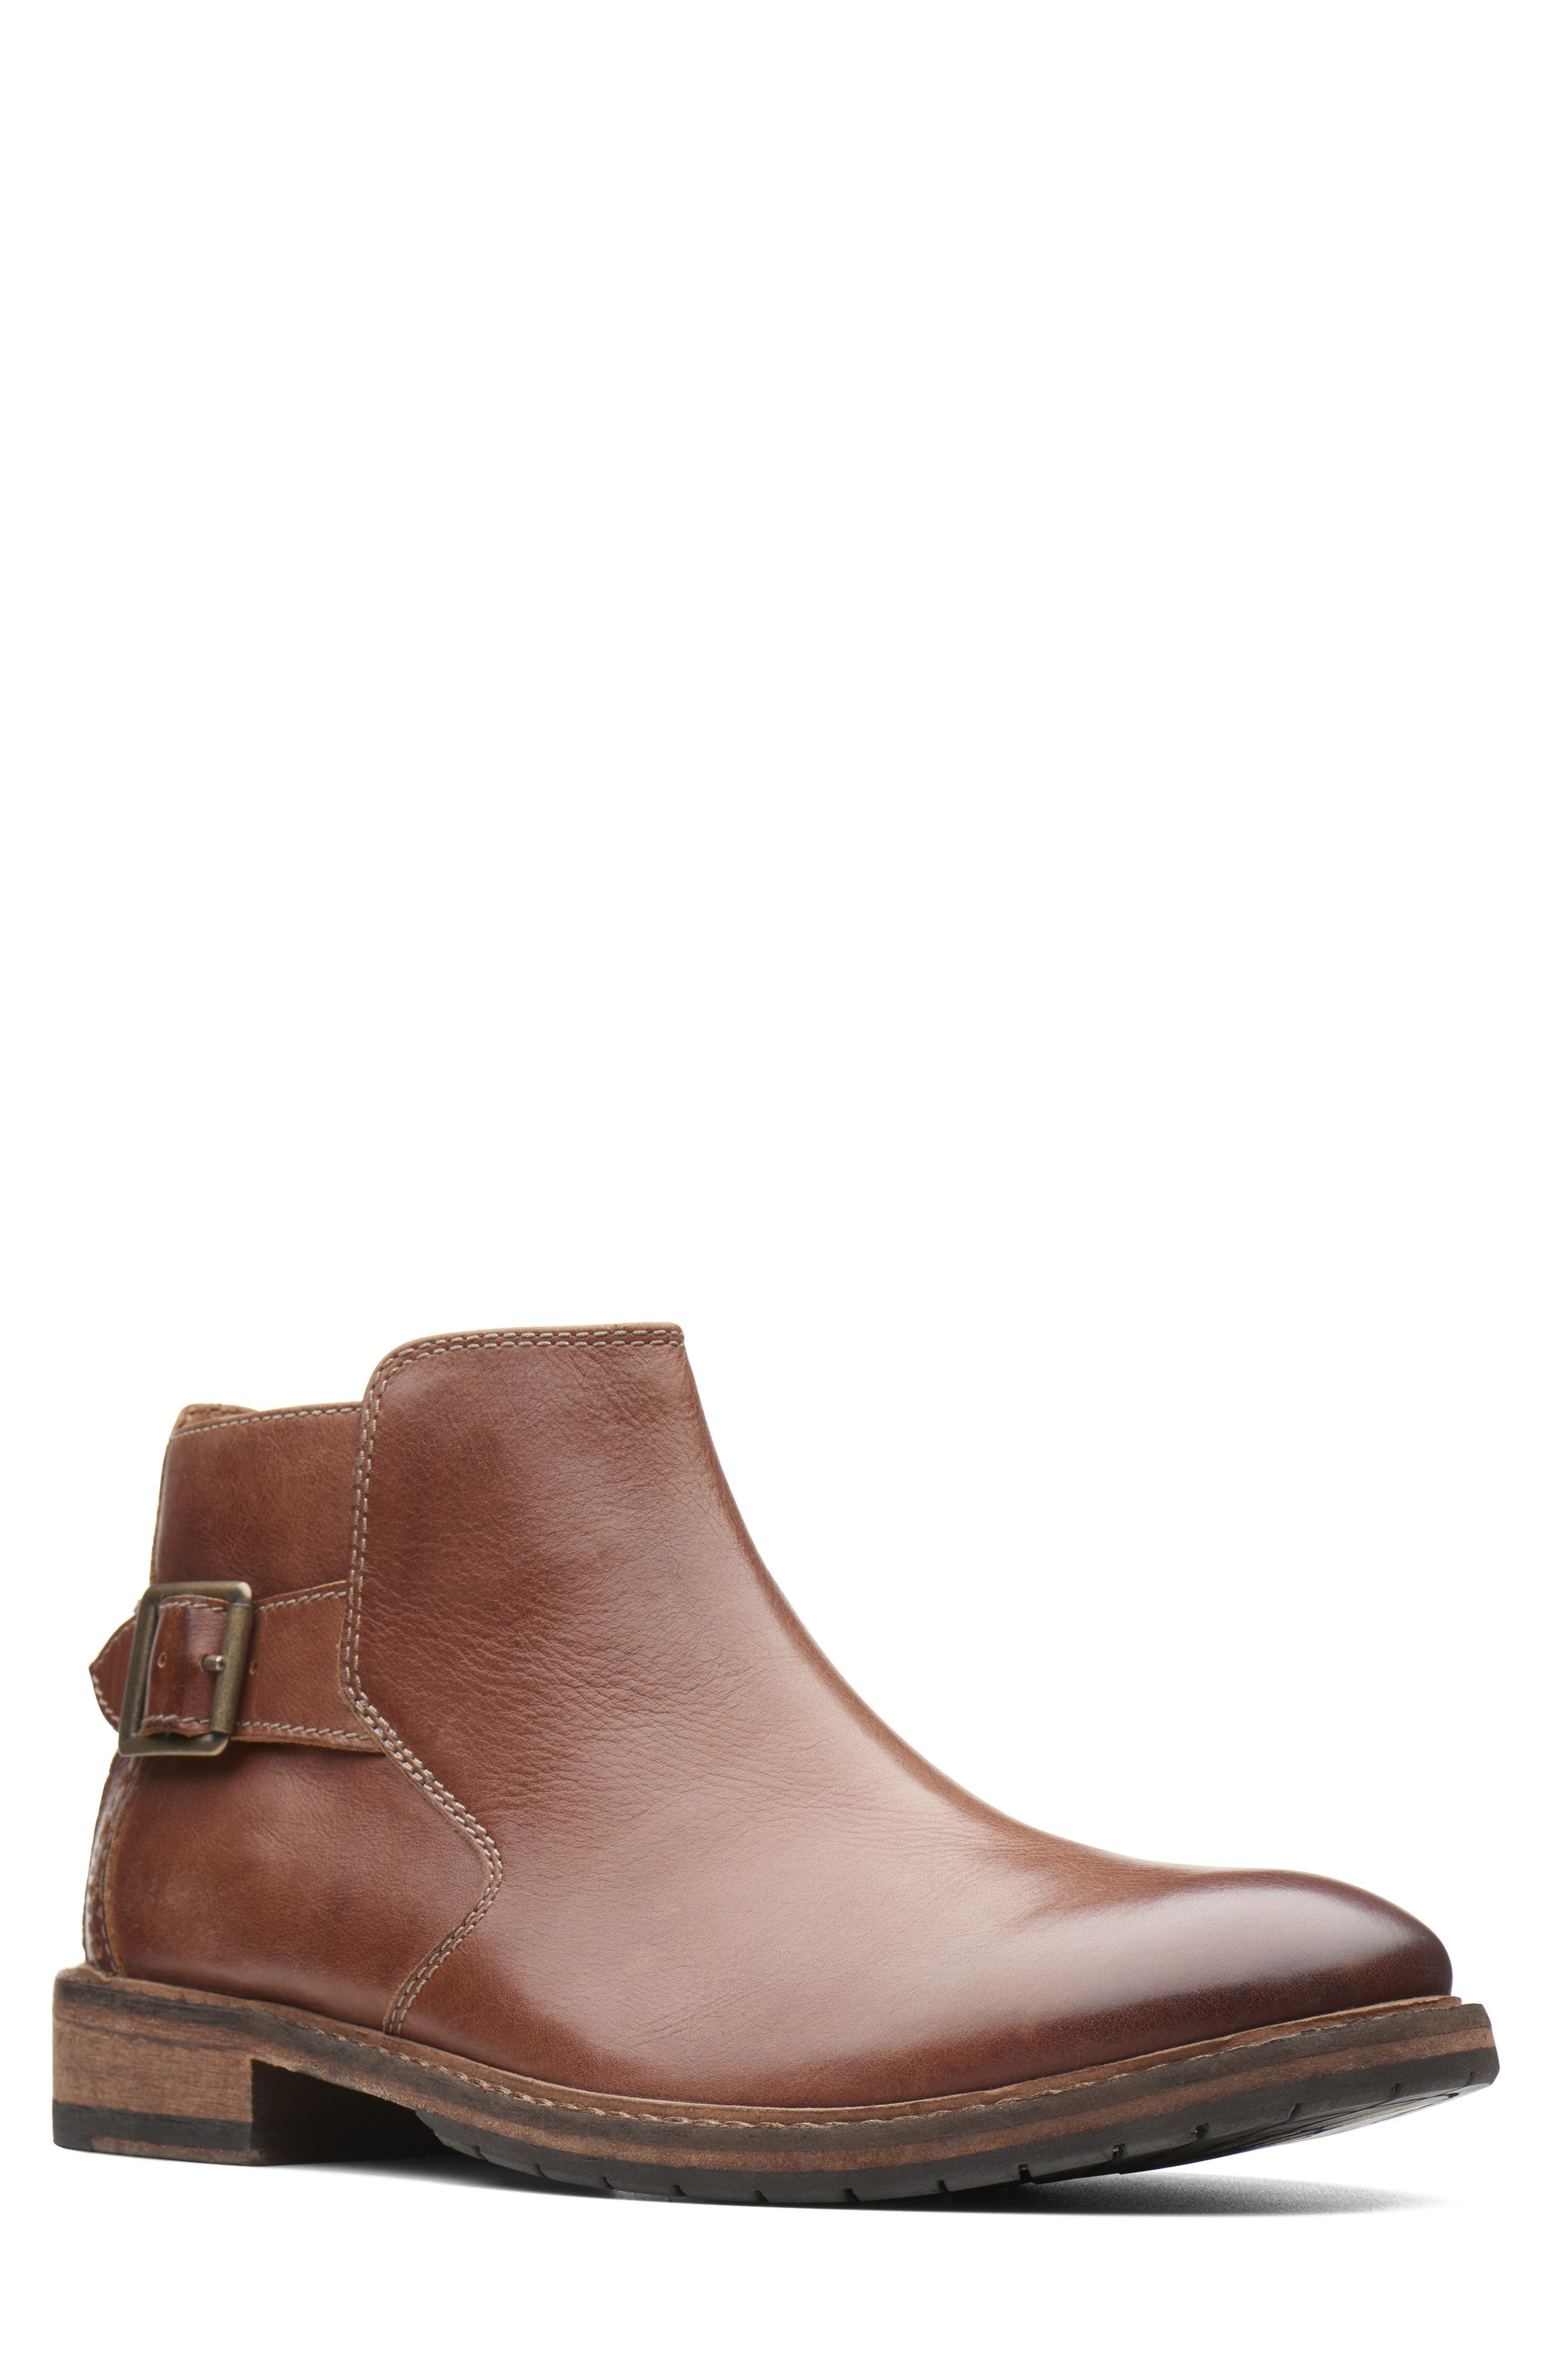 Clarkdale Remi Ankle Boot,                             Main thumbnail 1, color,                             DARK TAN LEATHER